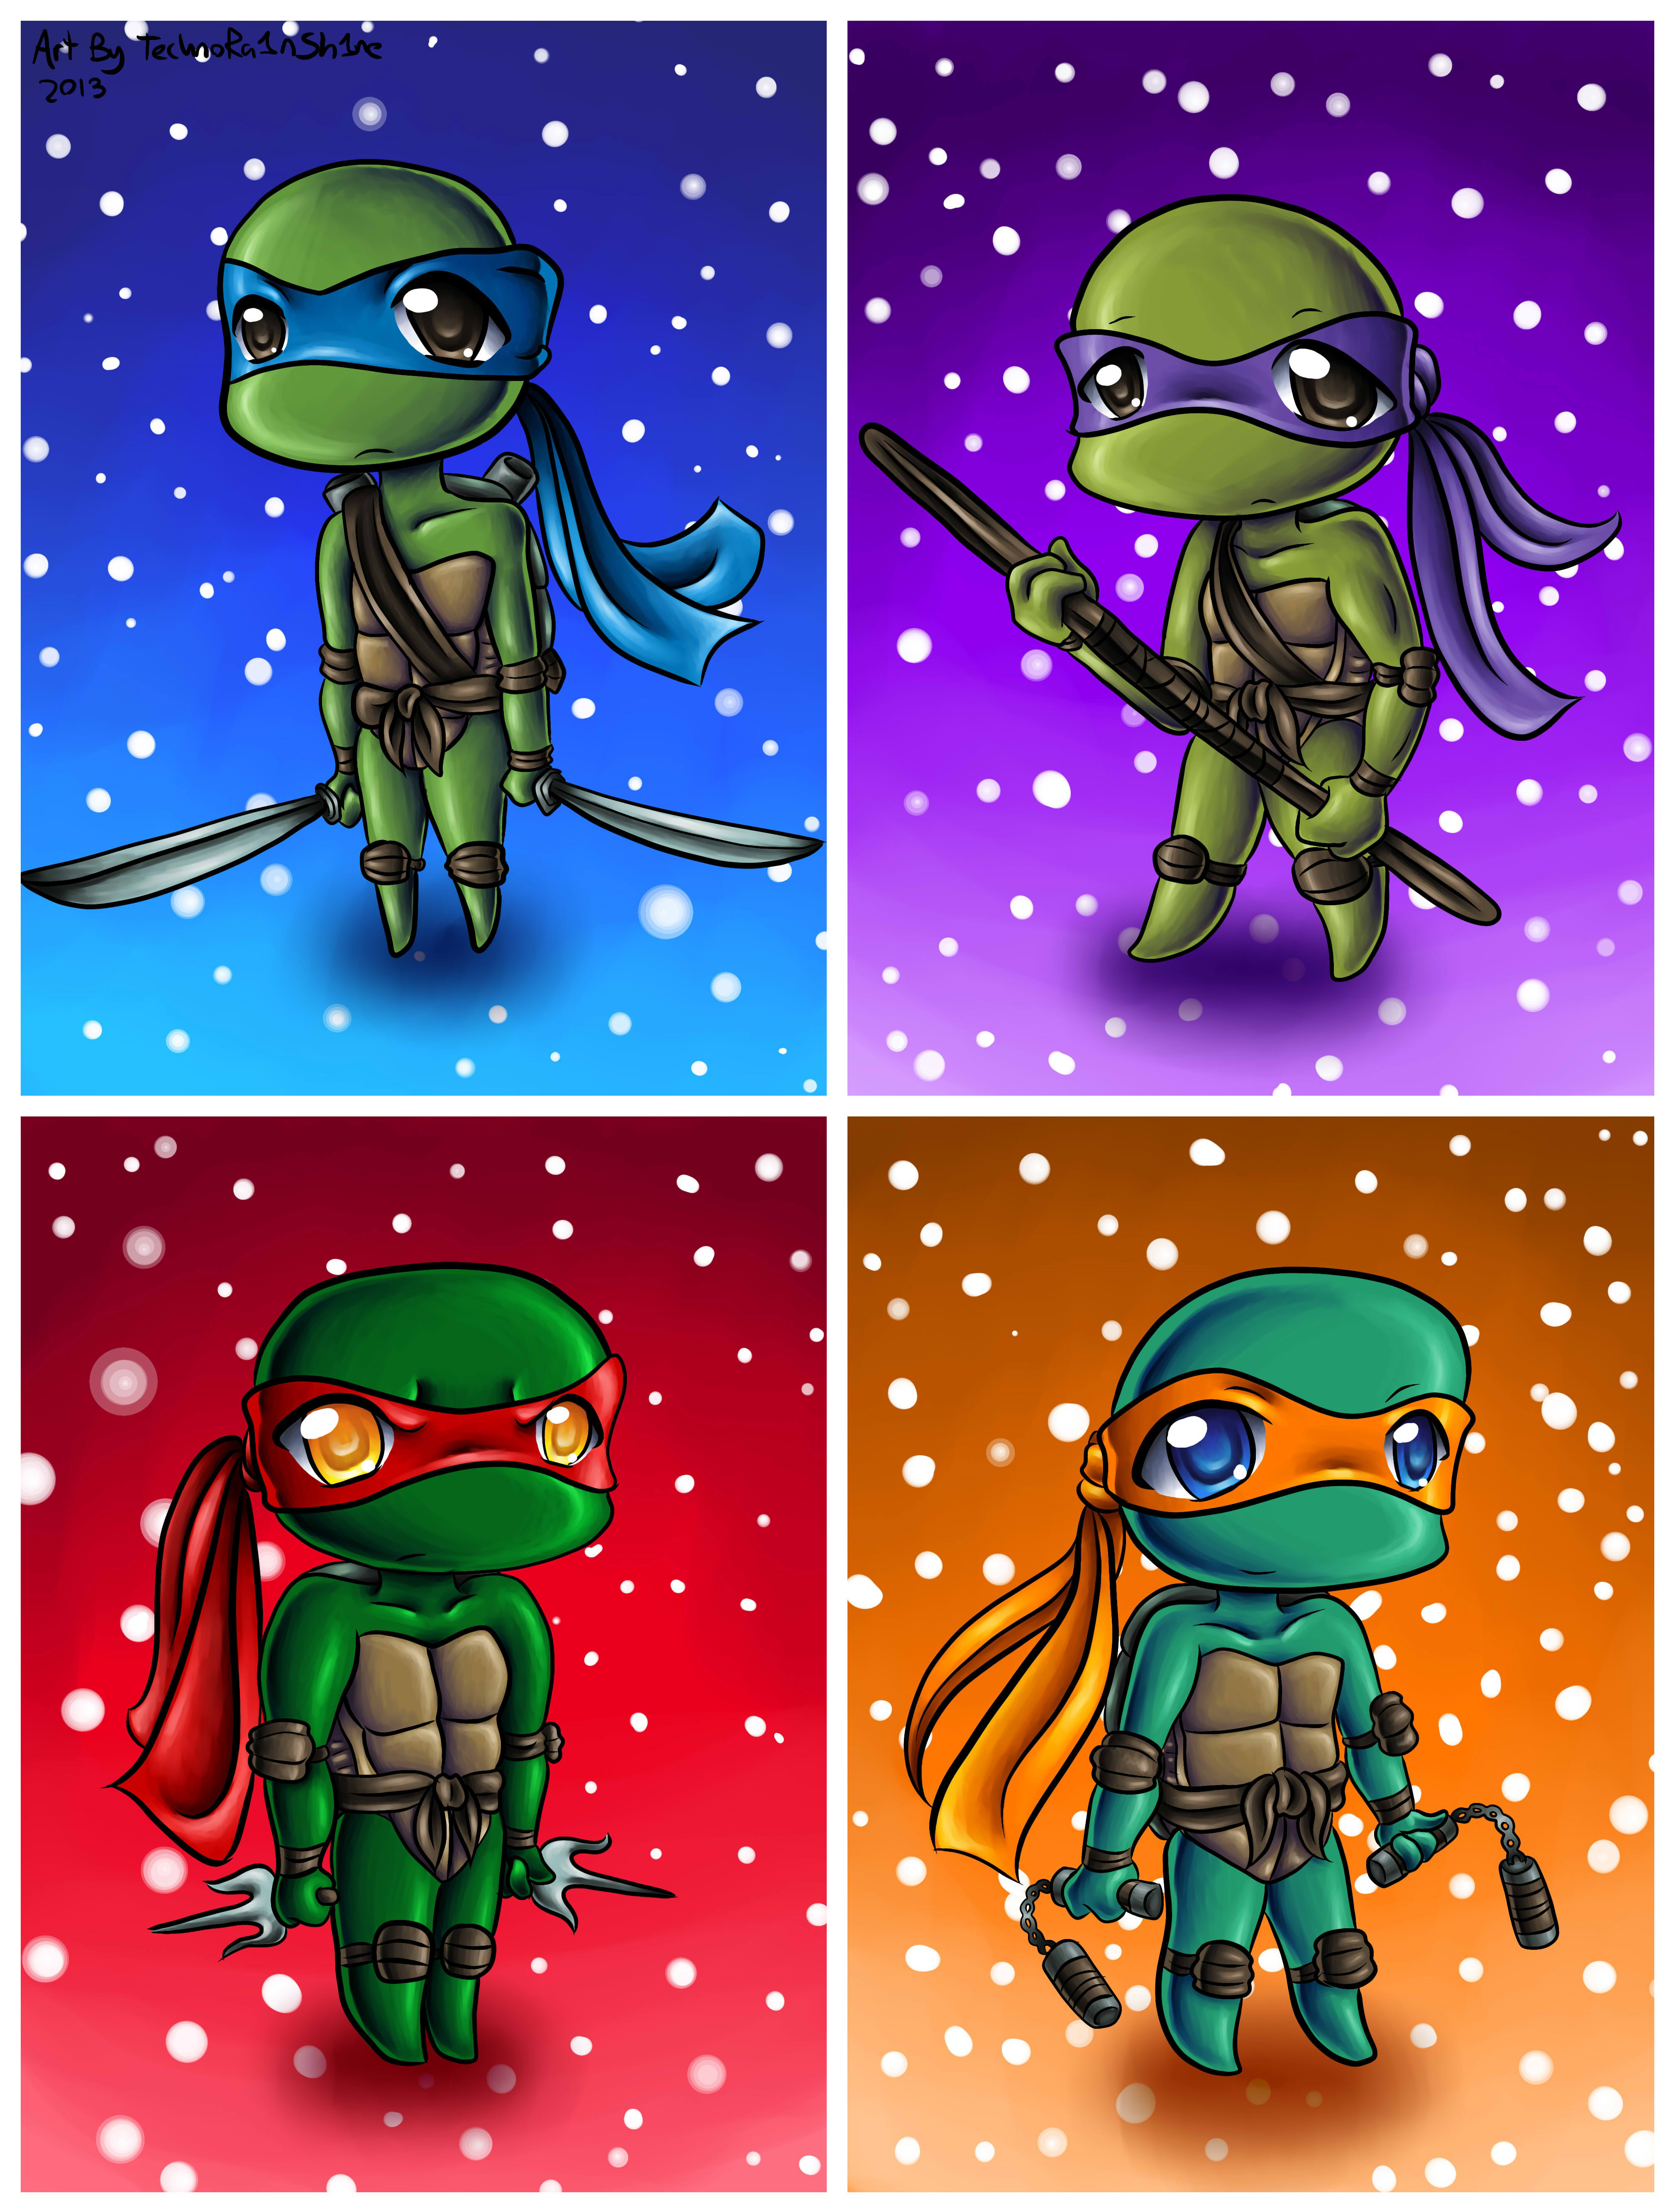 Cute Baby Ninja Turtles Wallpaper